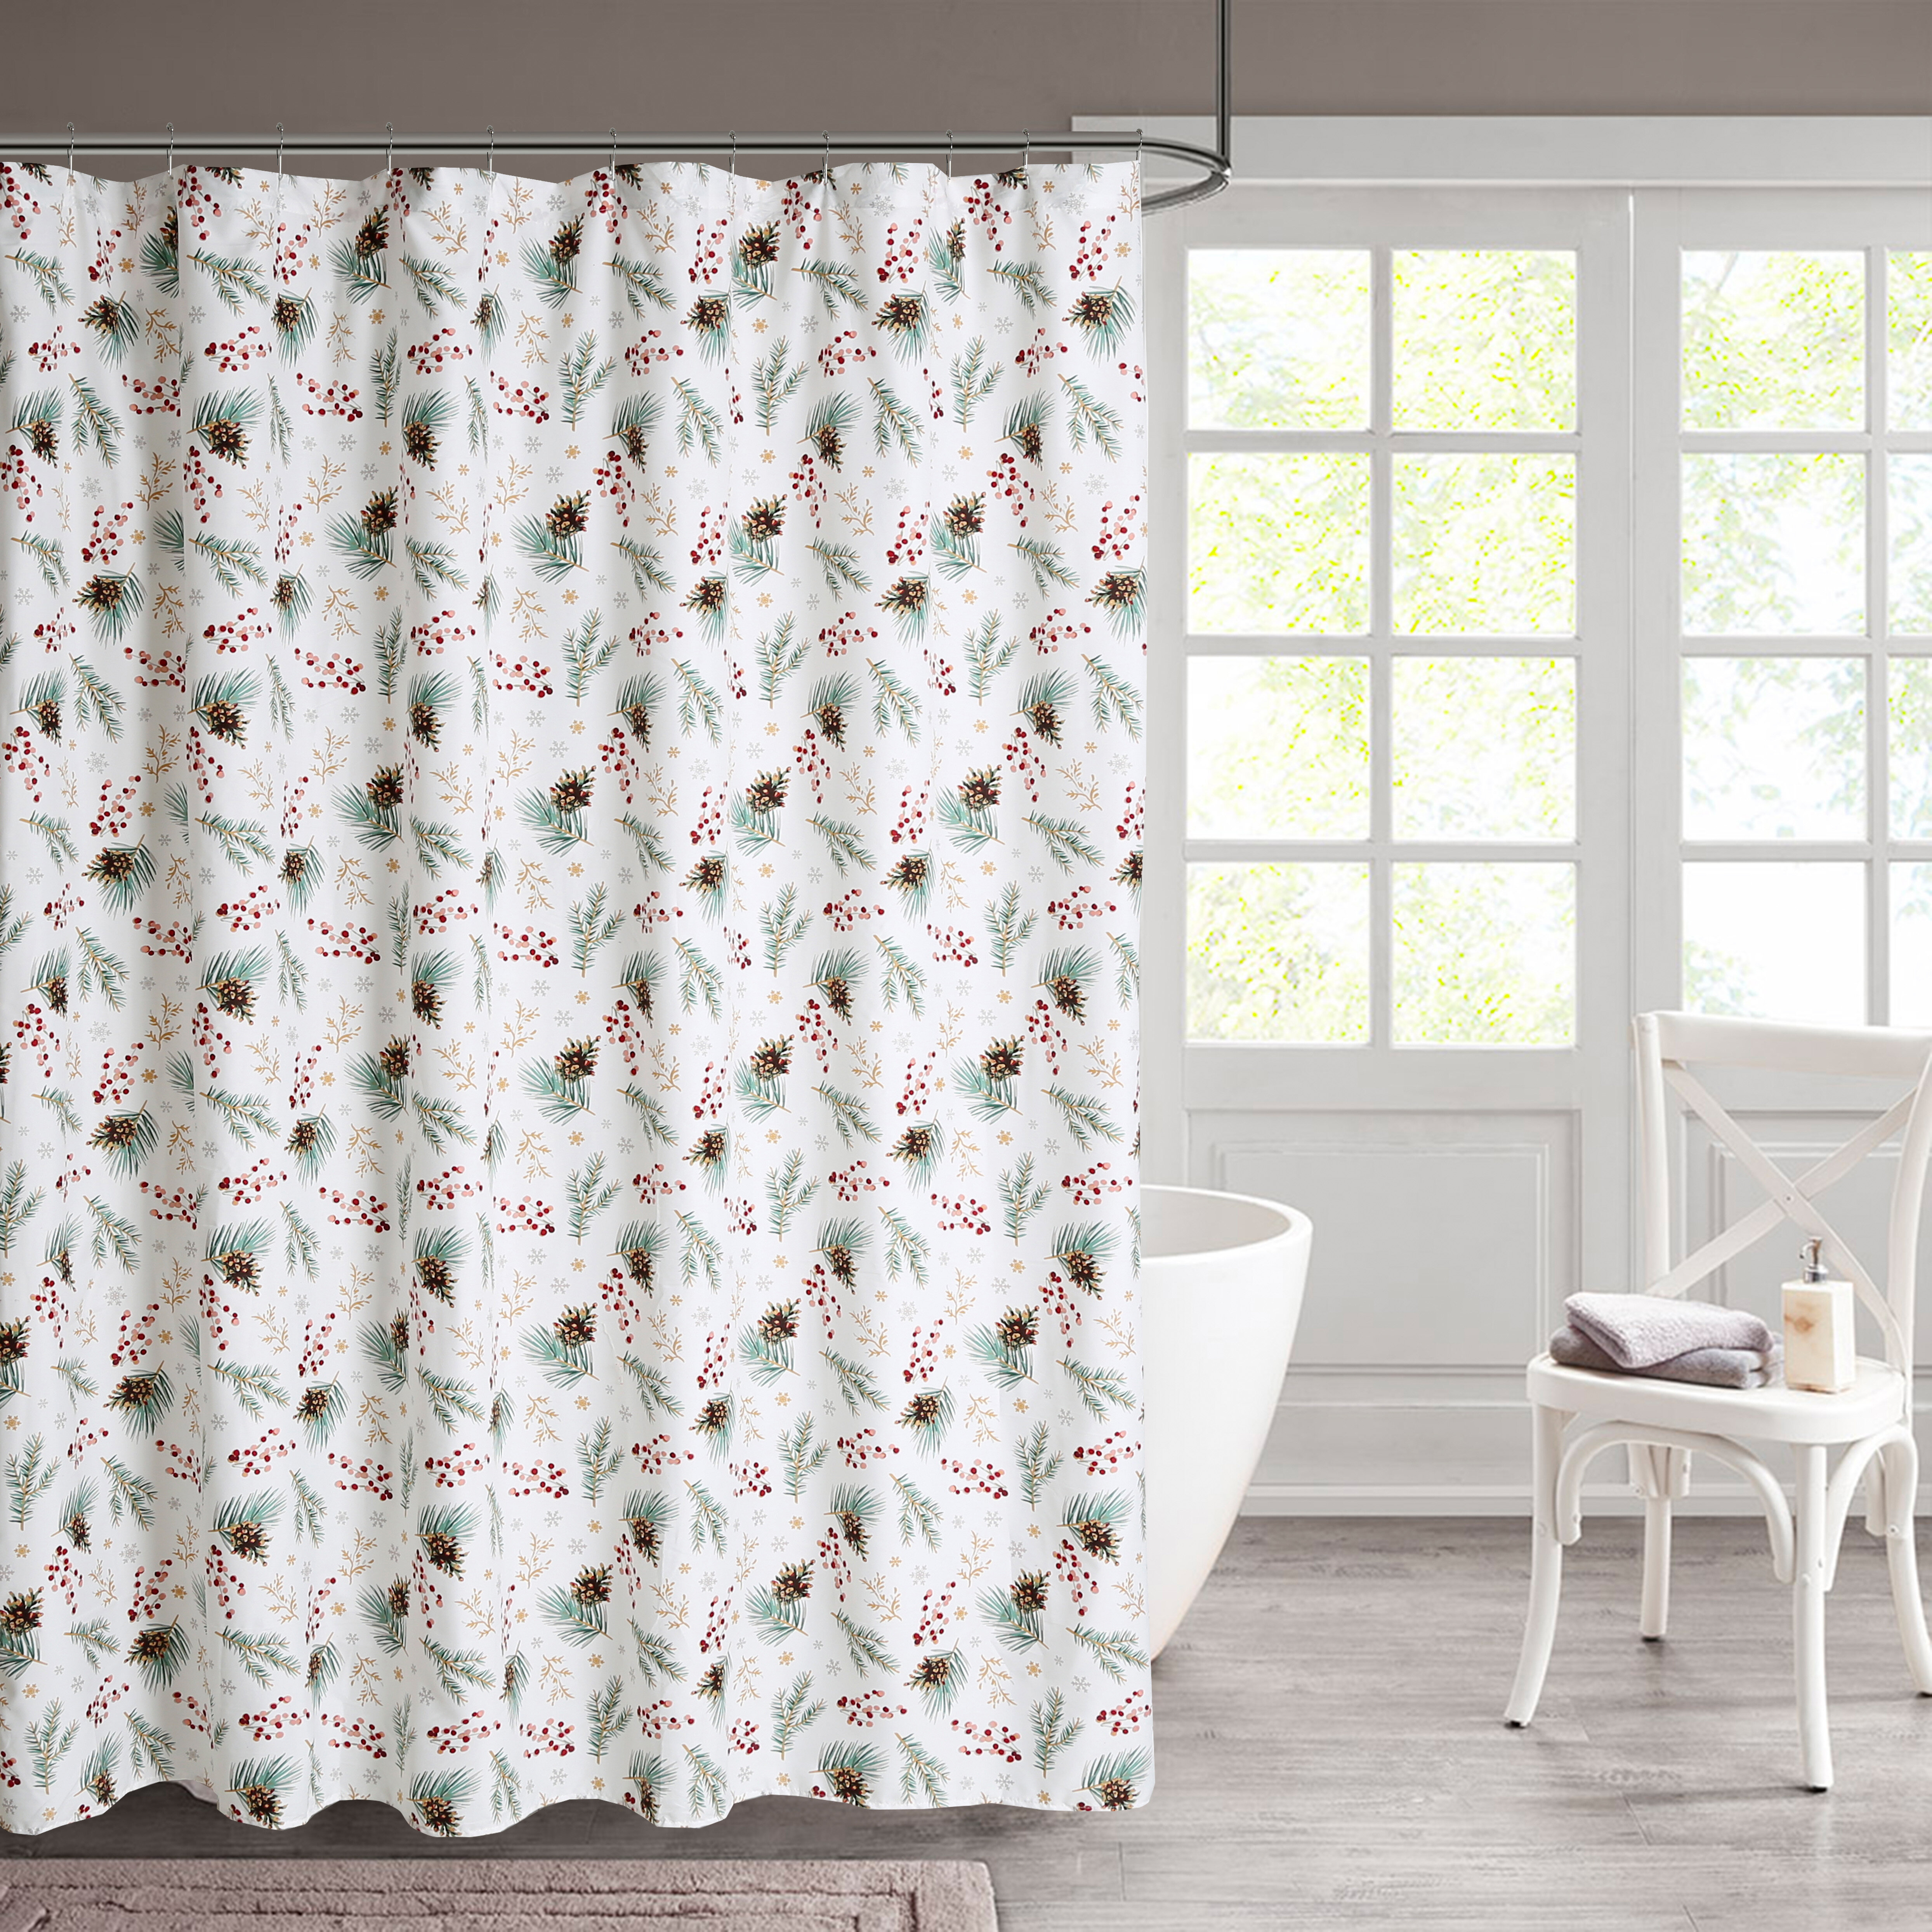 Christmas Nature Floral Shower Curtains Shower Liners You Ll Love In 2021 Wayfair